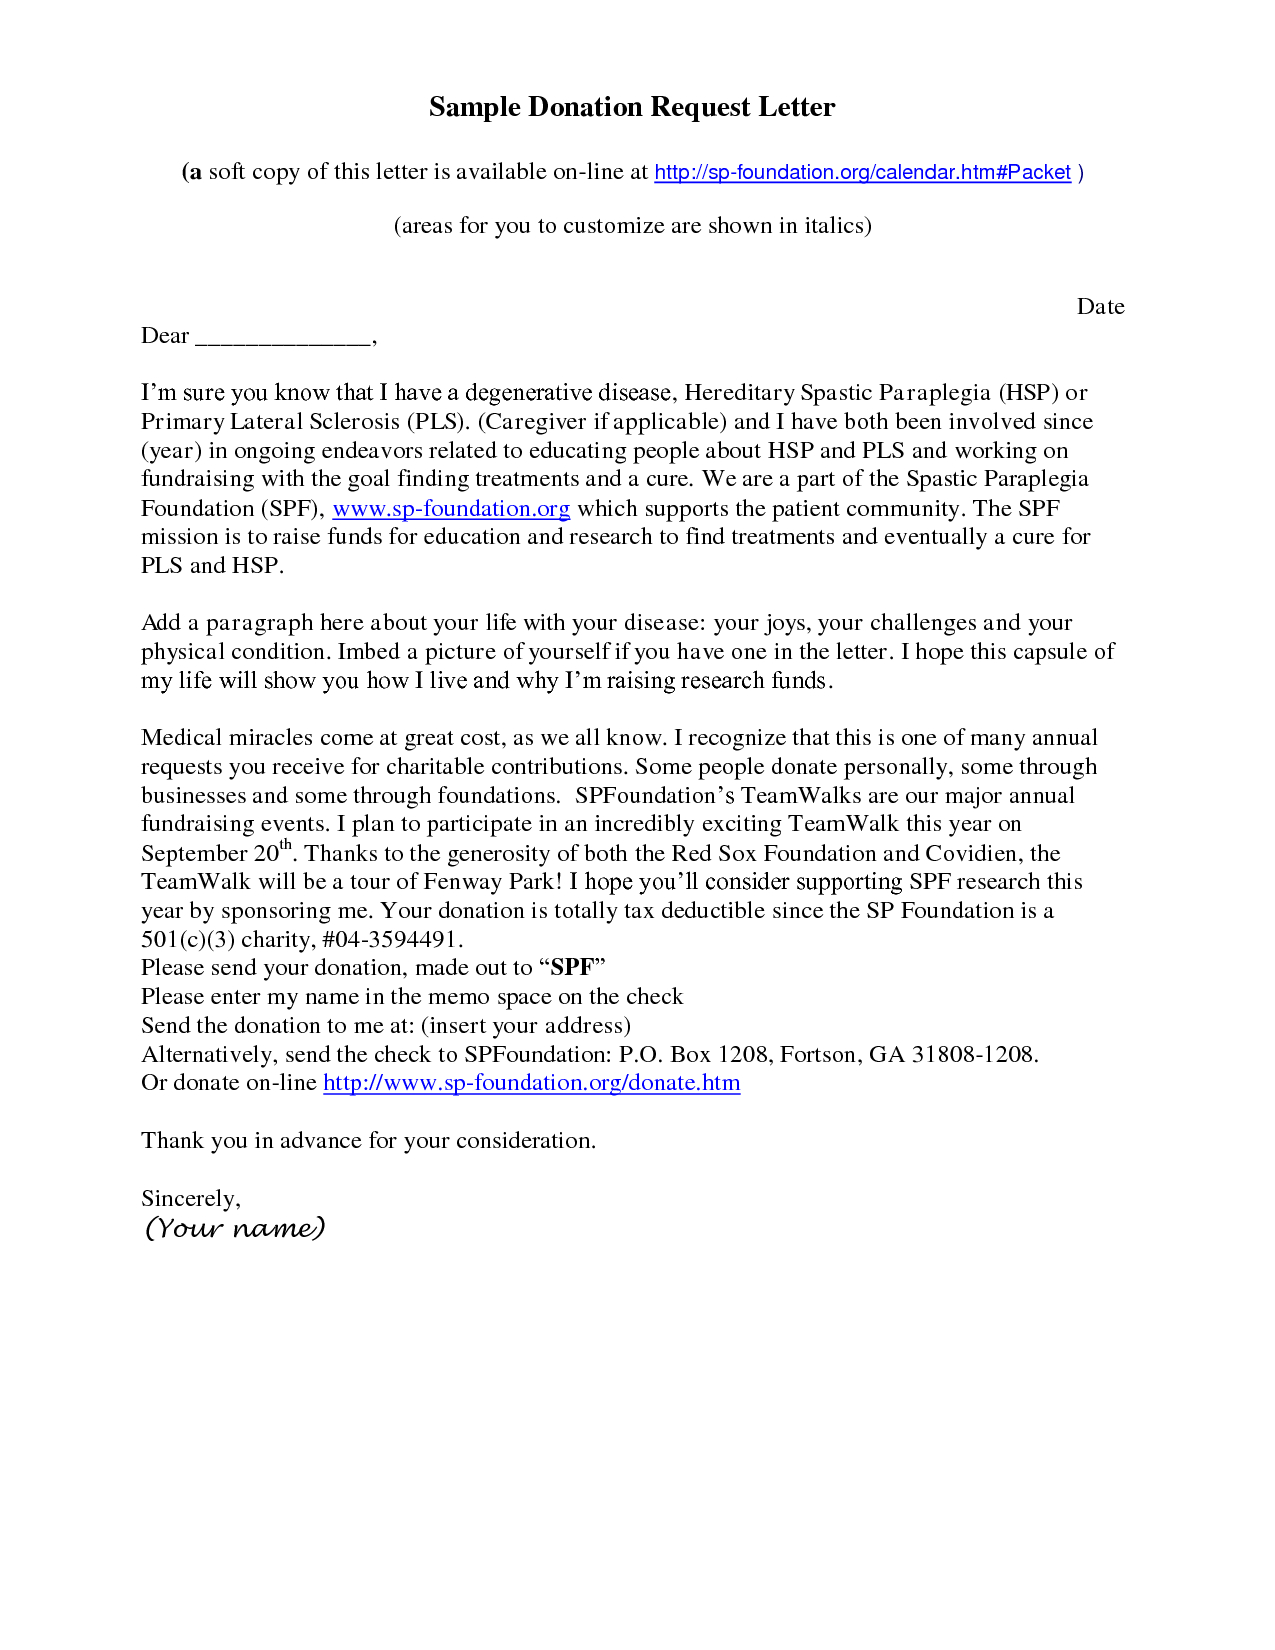 Charity Donation Letter Template - How to Write A solicitation Letter for Donations Choice Image